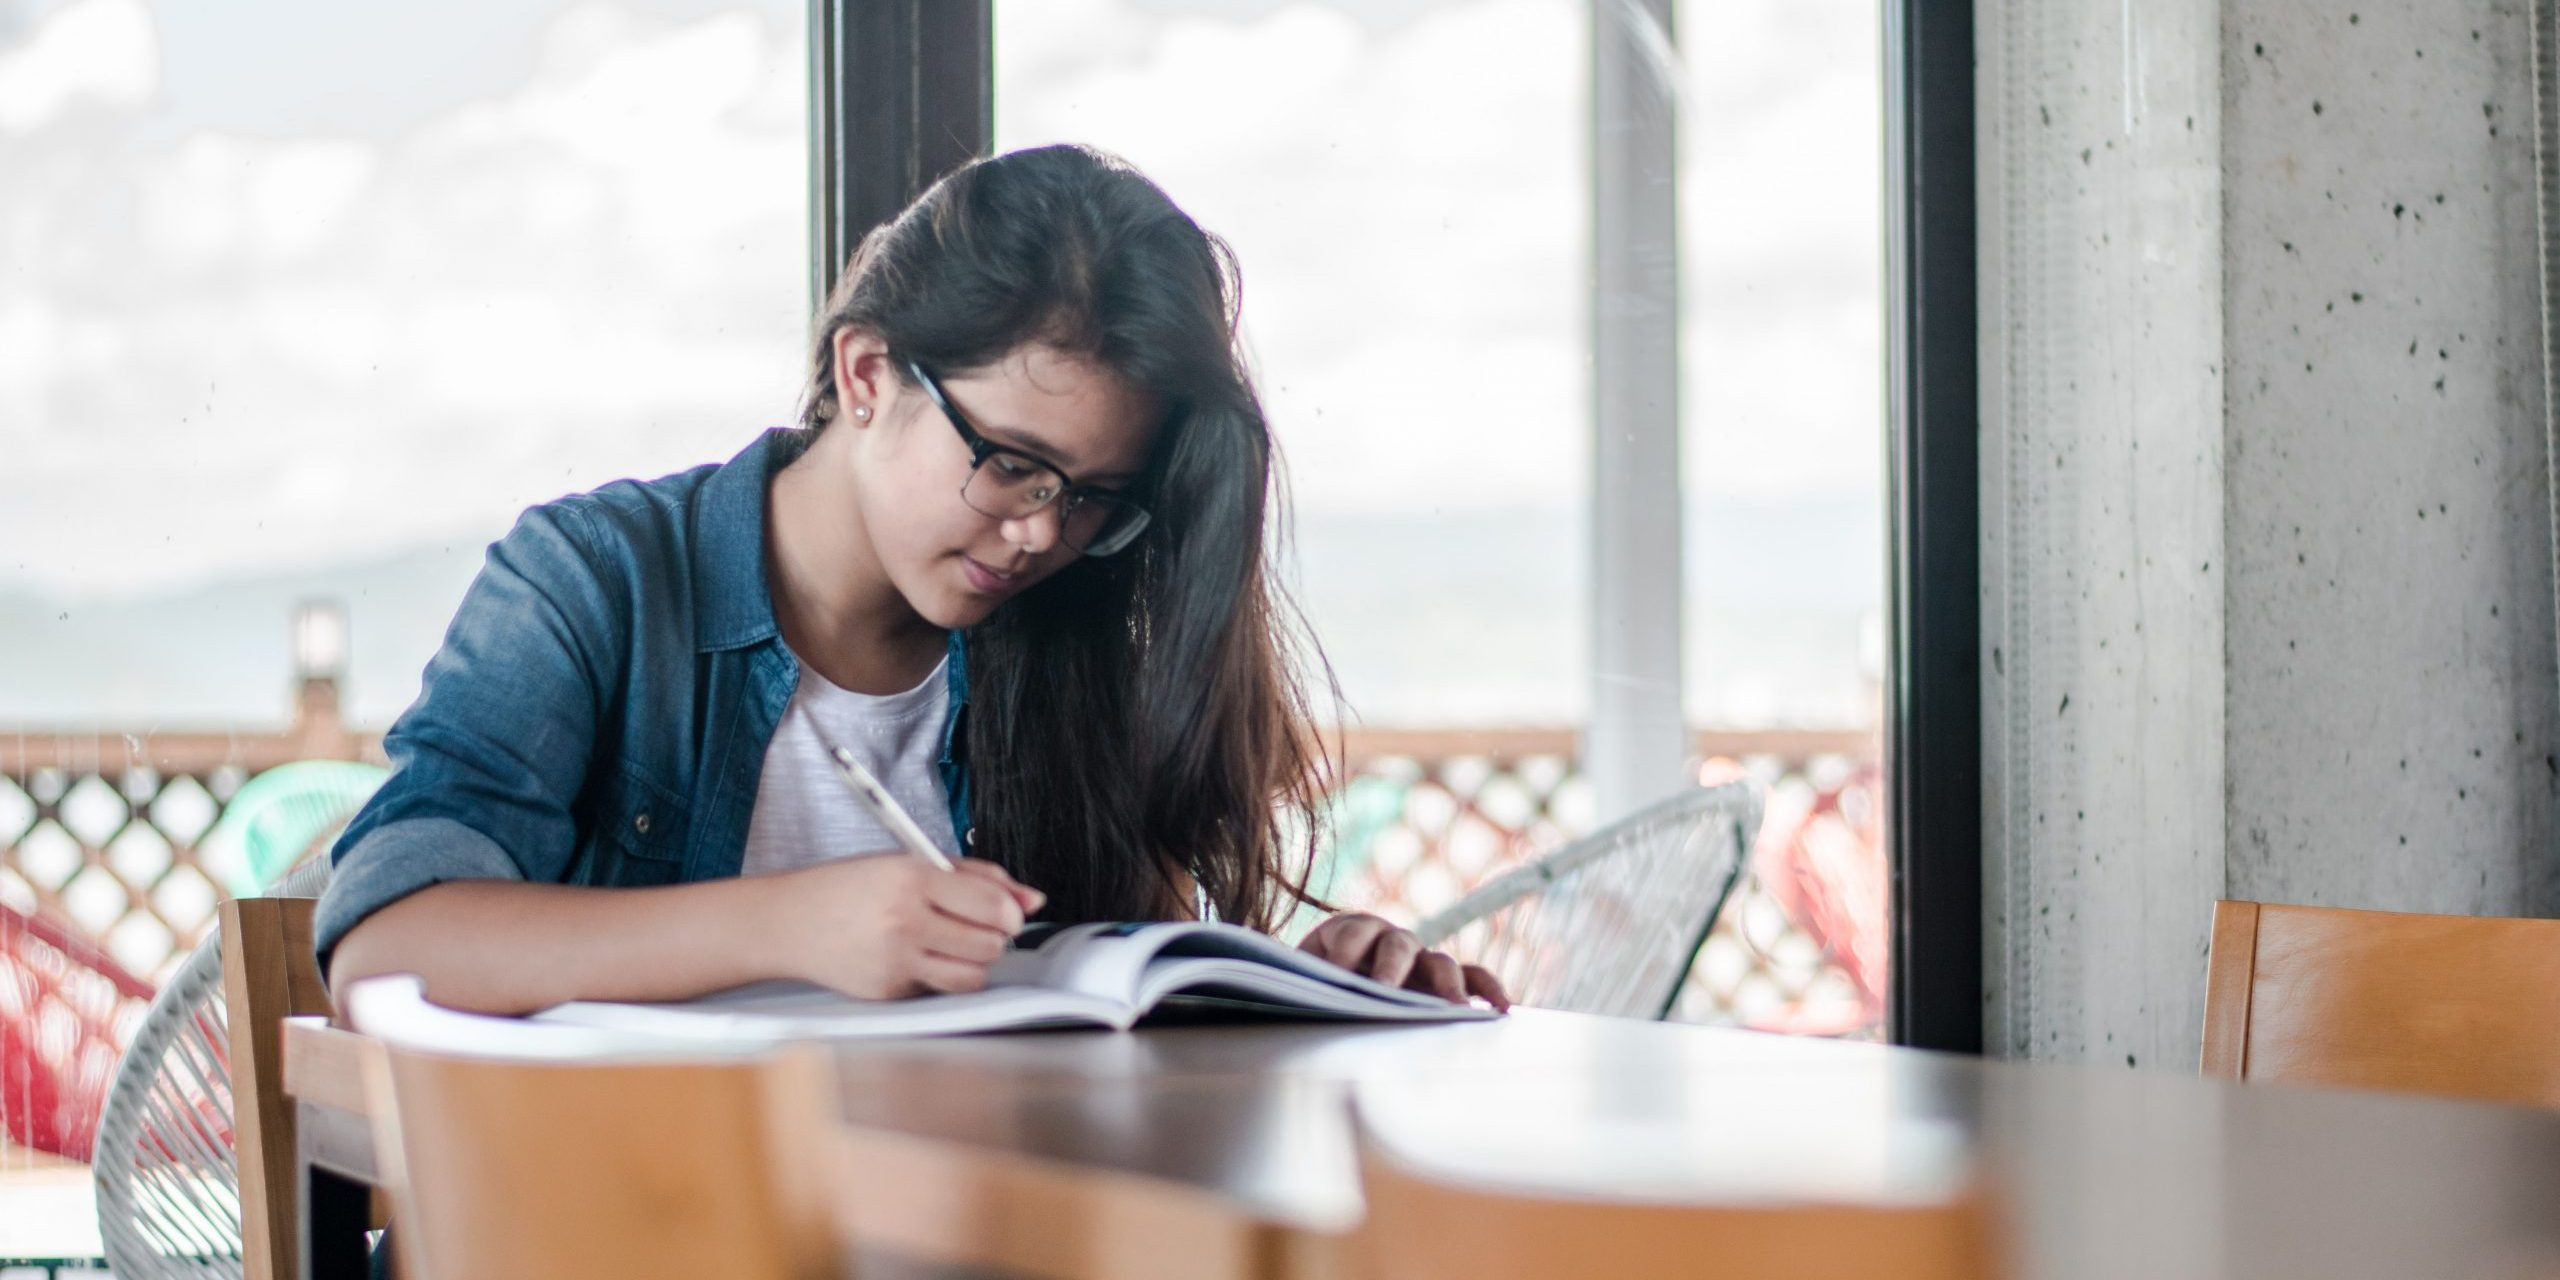 A woman works on a workbook as part of a marine conservation internship